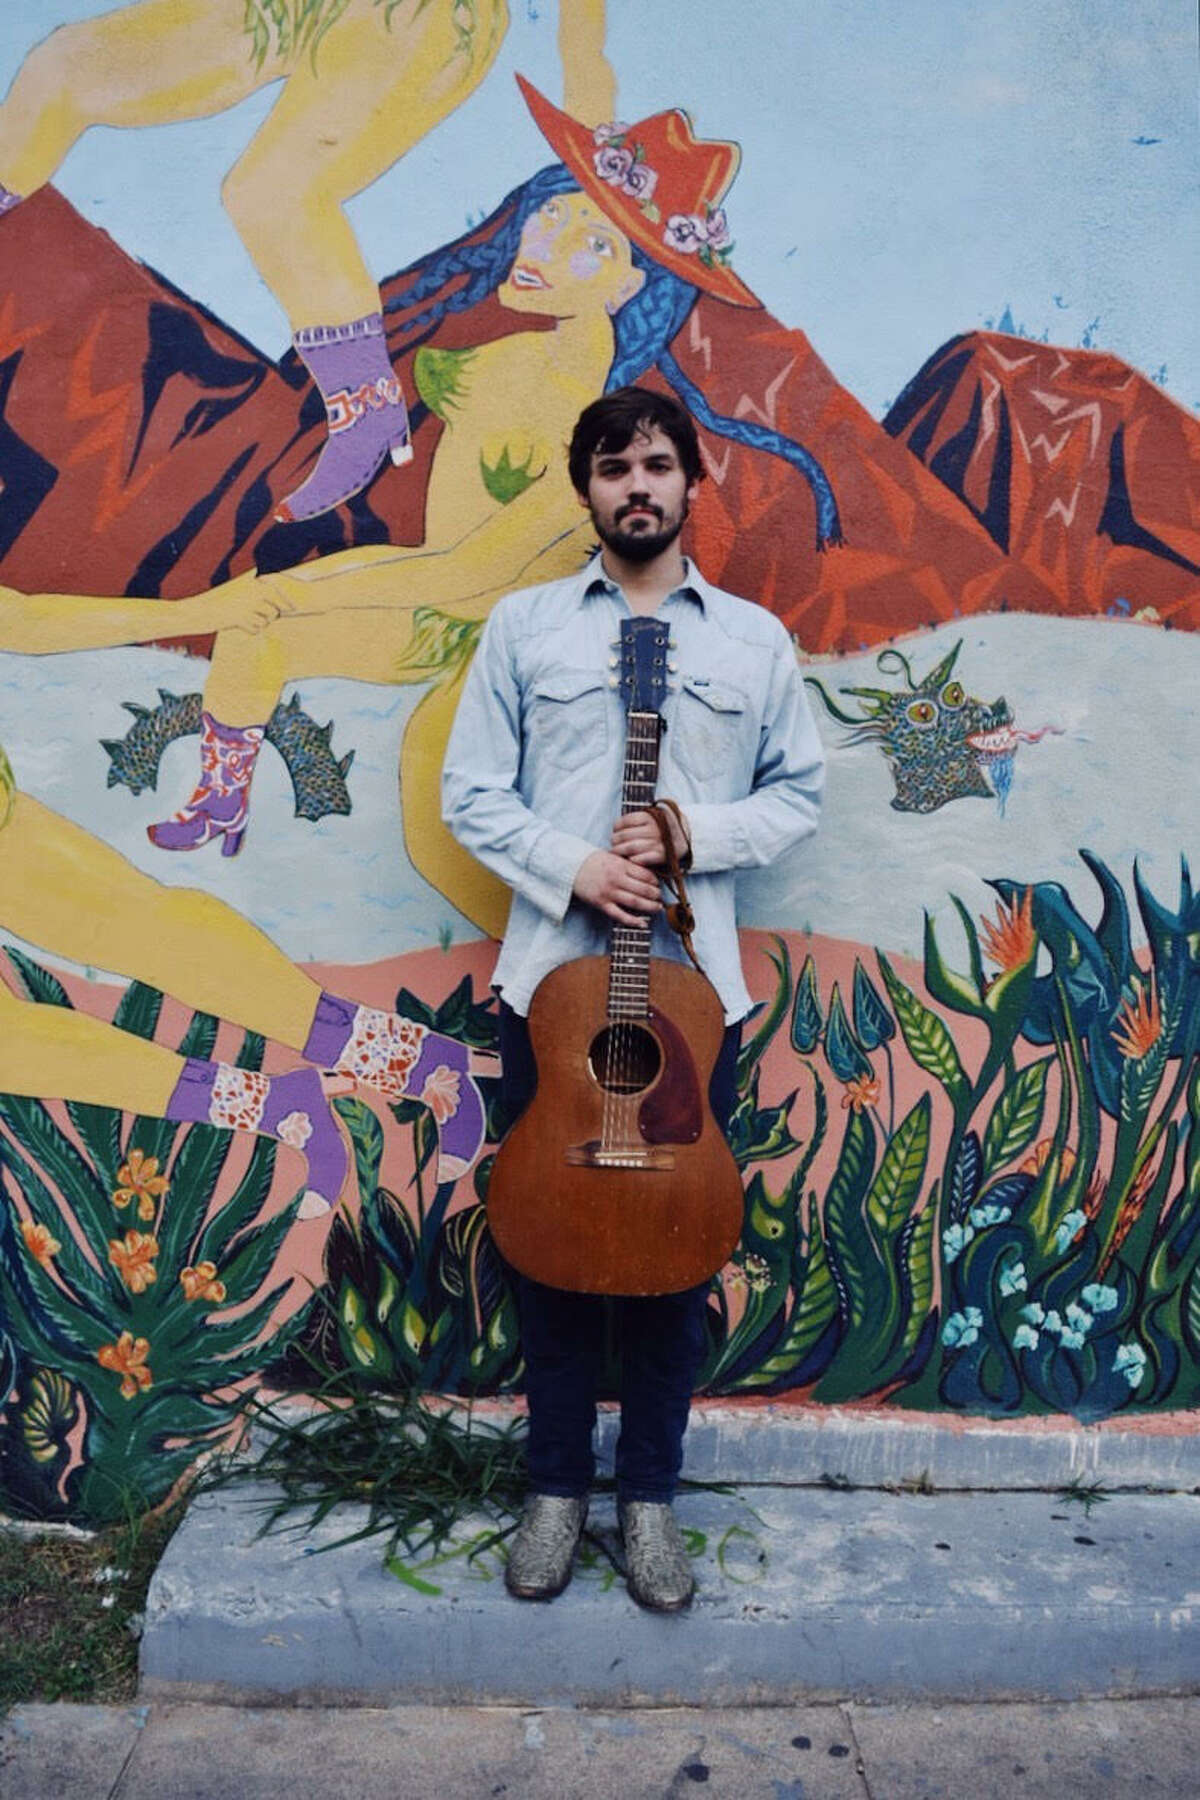 Musician Brandon Luedtke will perform at the Victoria House in Beaumont on Sunday, November 26, 2017. Photo courtesy of Brandon Luedtke